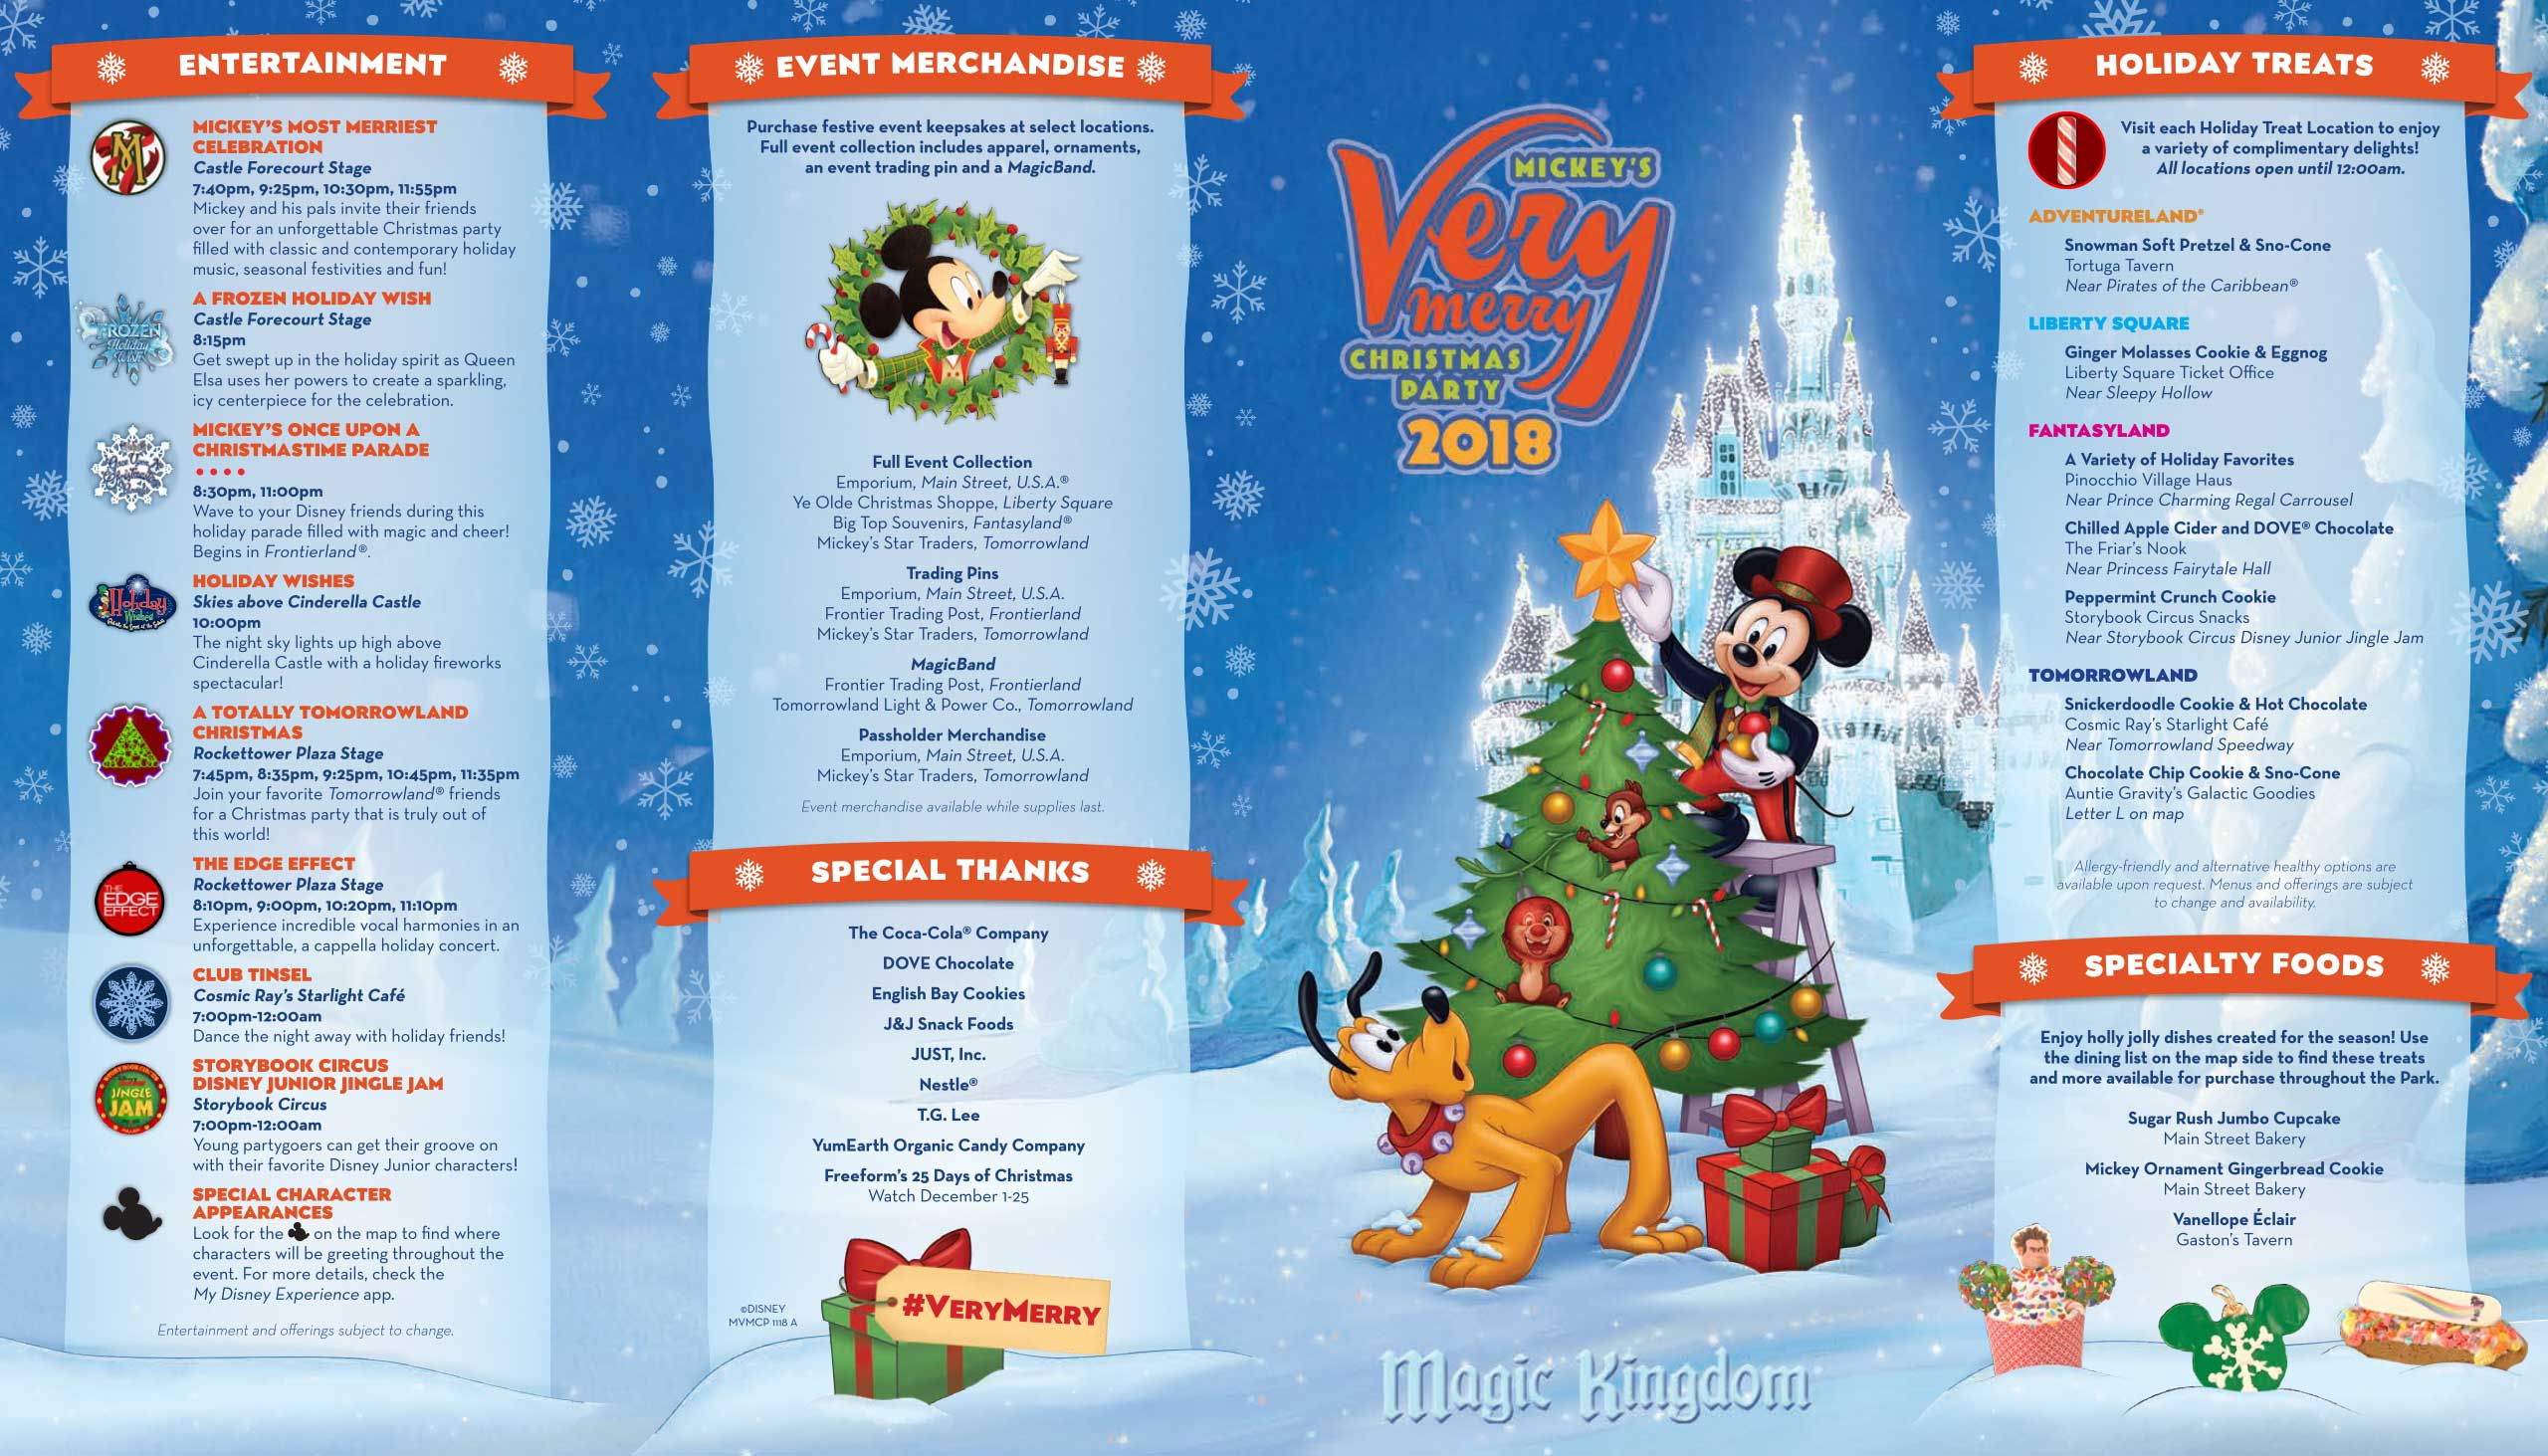 Mickey's Very Merry Christmas Party 2018 guide map - front